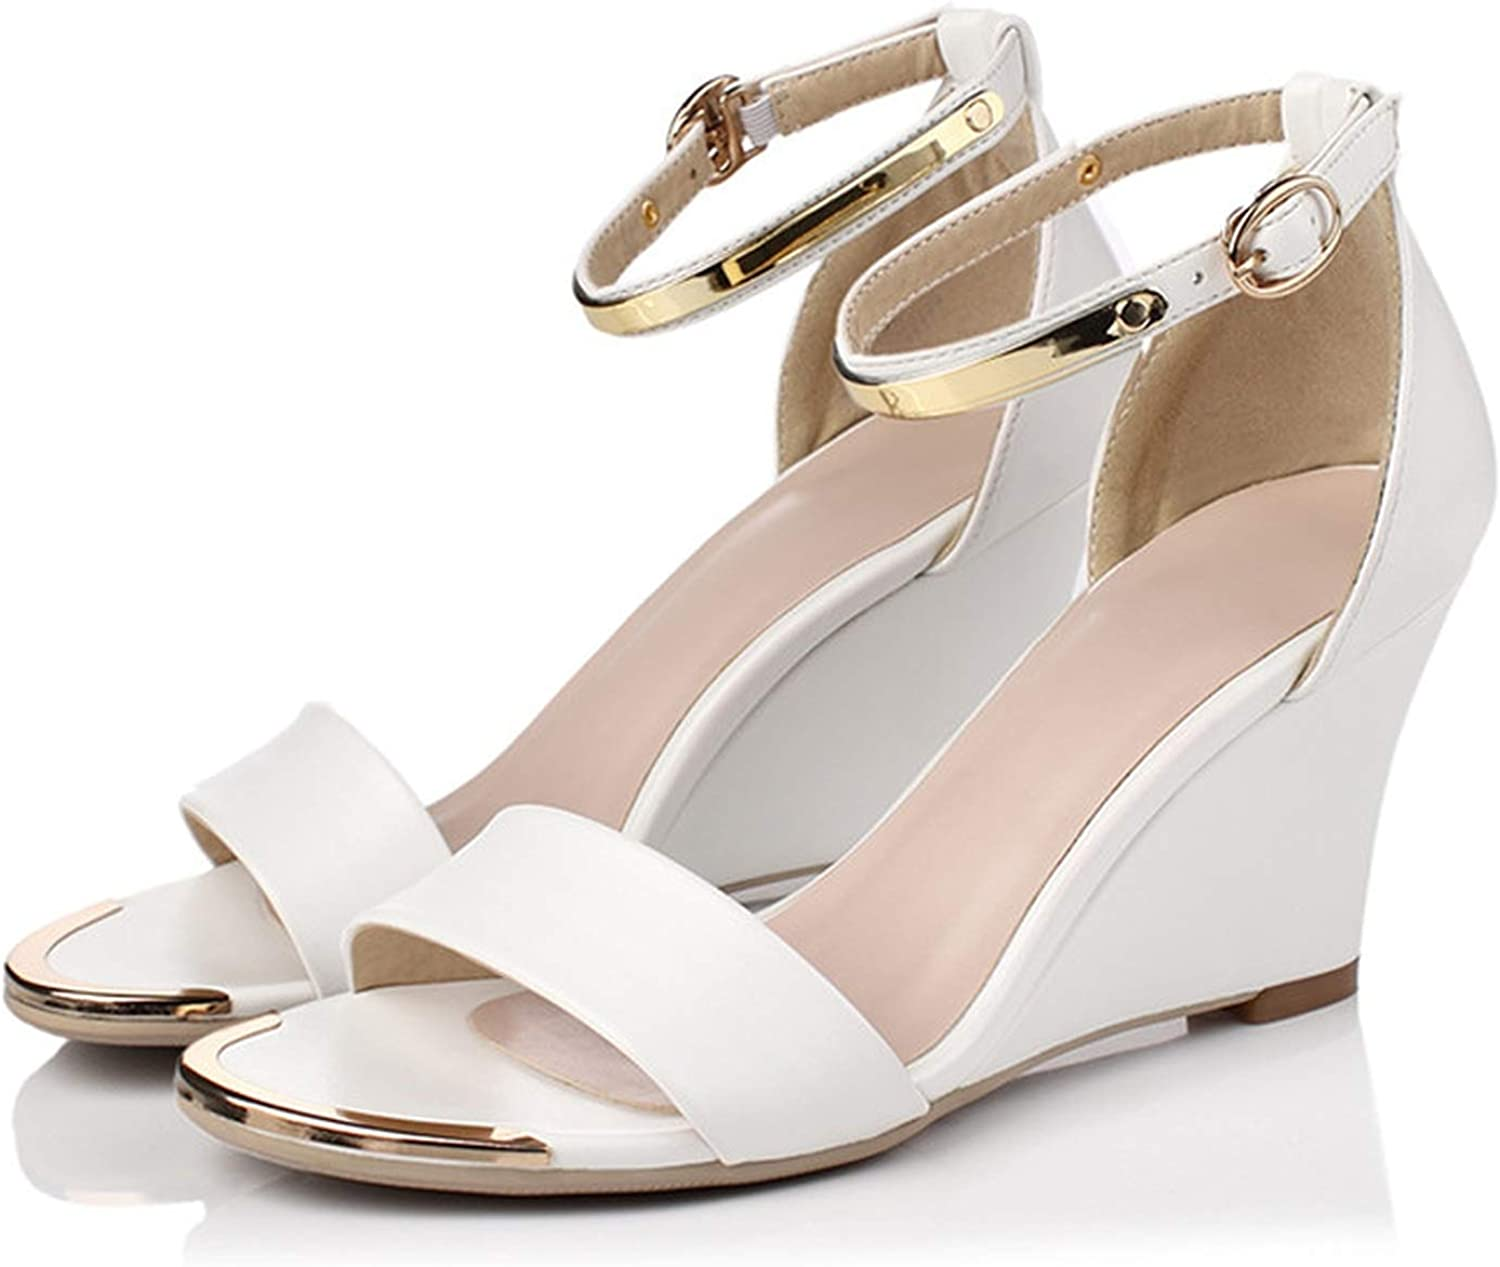 YuJi Women Sandals Buckle Wedge High Heel shoes Metal Decoration Open Toe Ankle Strap Sandals,White,3